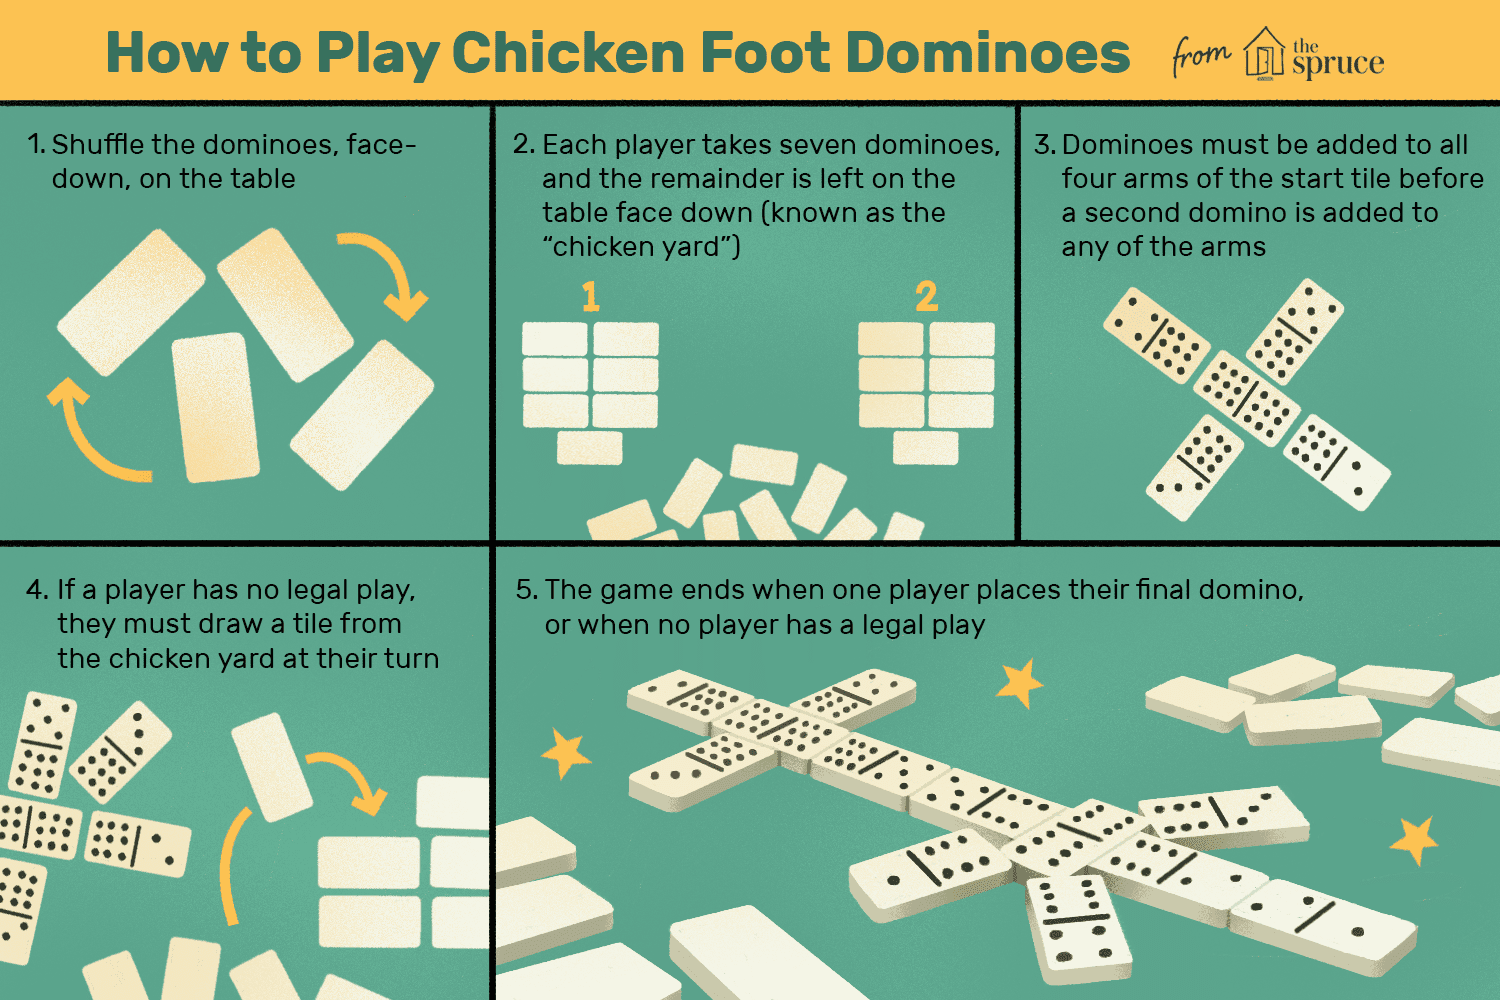 Illustration of how to play chicken foot dominos